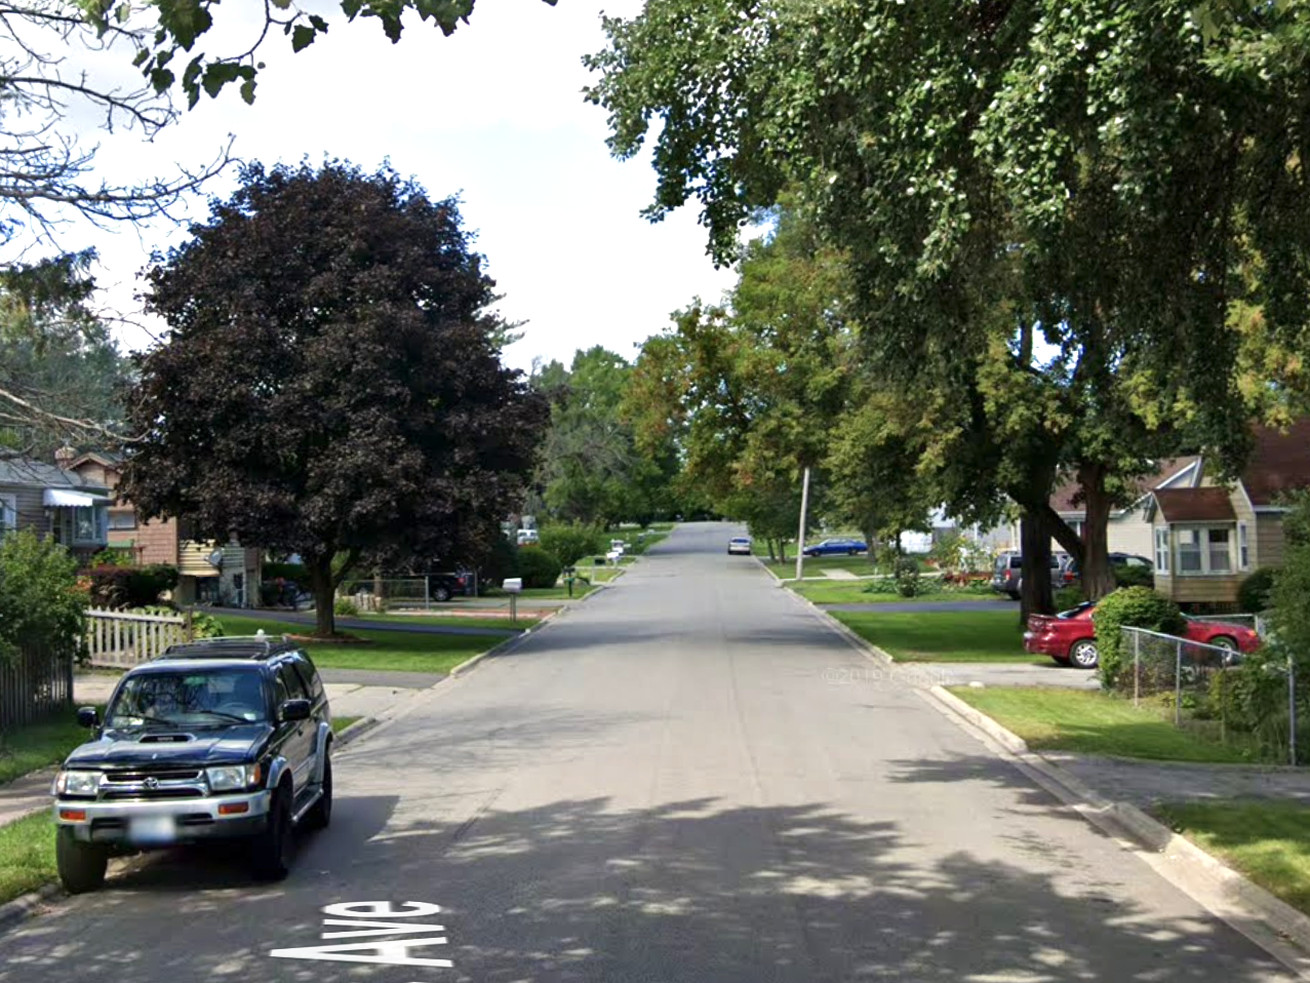 Police are investigating a double fatal shooting Sept. 22, 2020, in the 100 block of Frolic Avenue in Waukegan.